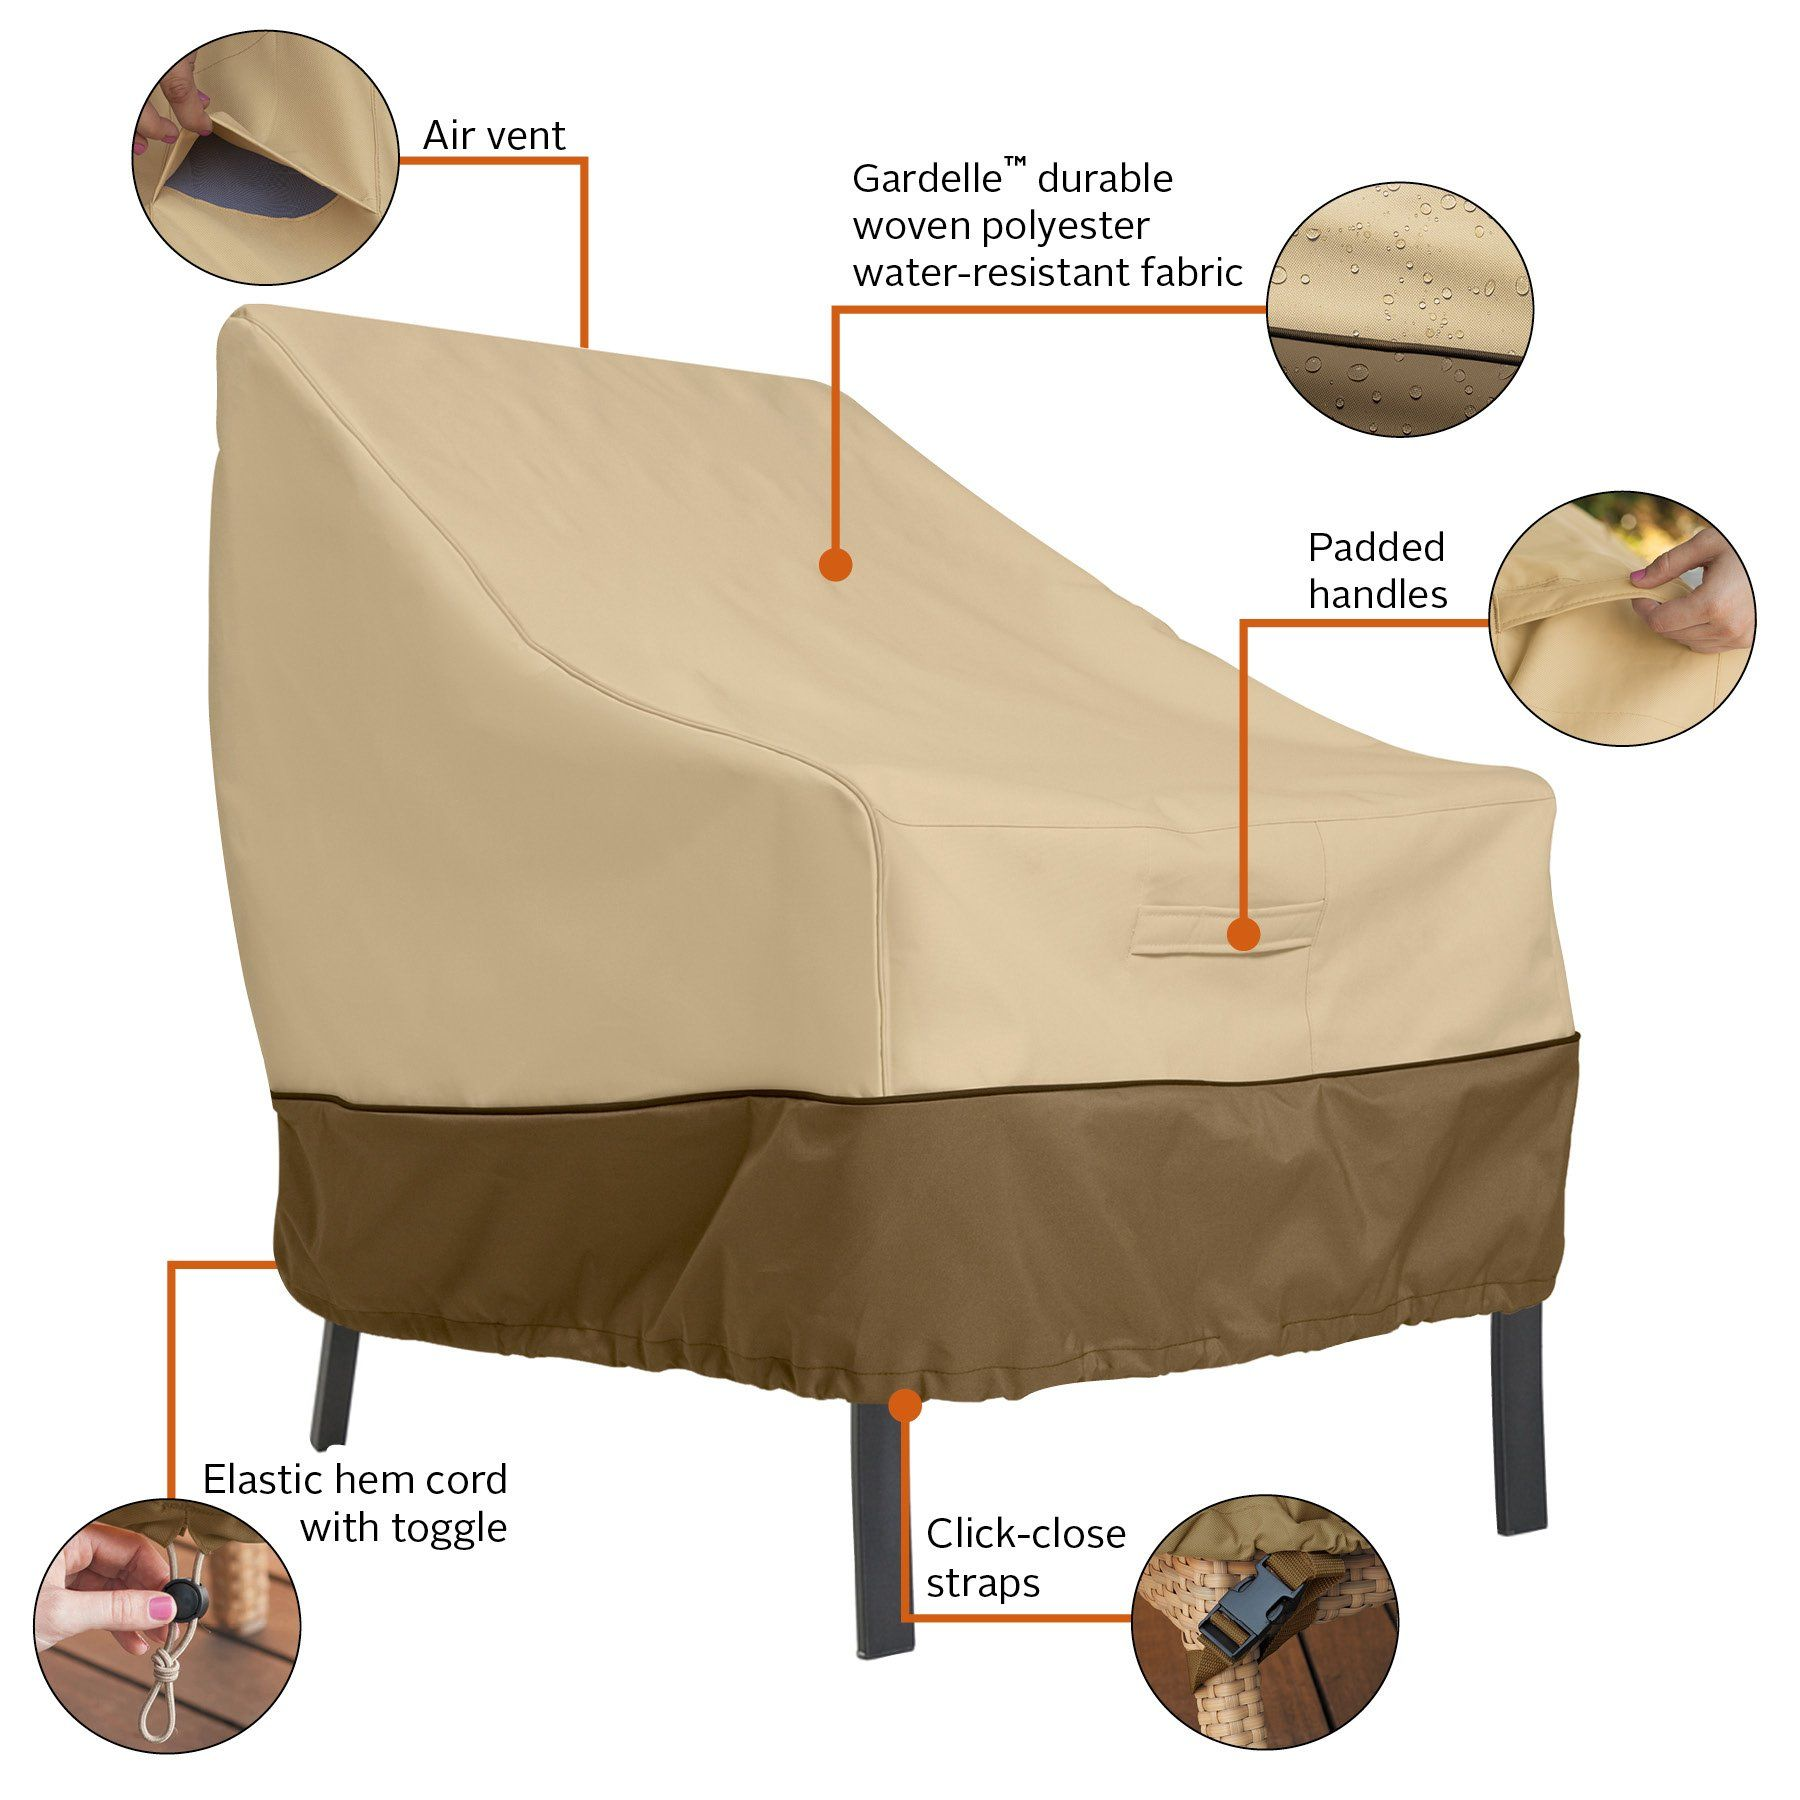 Clic Accessories Veranda Patio Lounge Chair Club Cover Durable And Water Resistant Outdoor Furniture